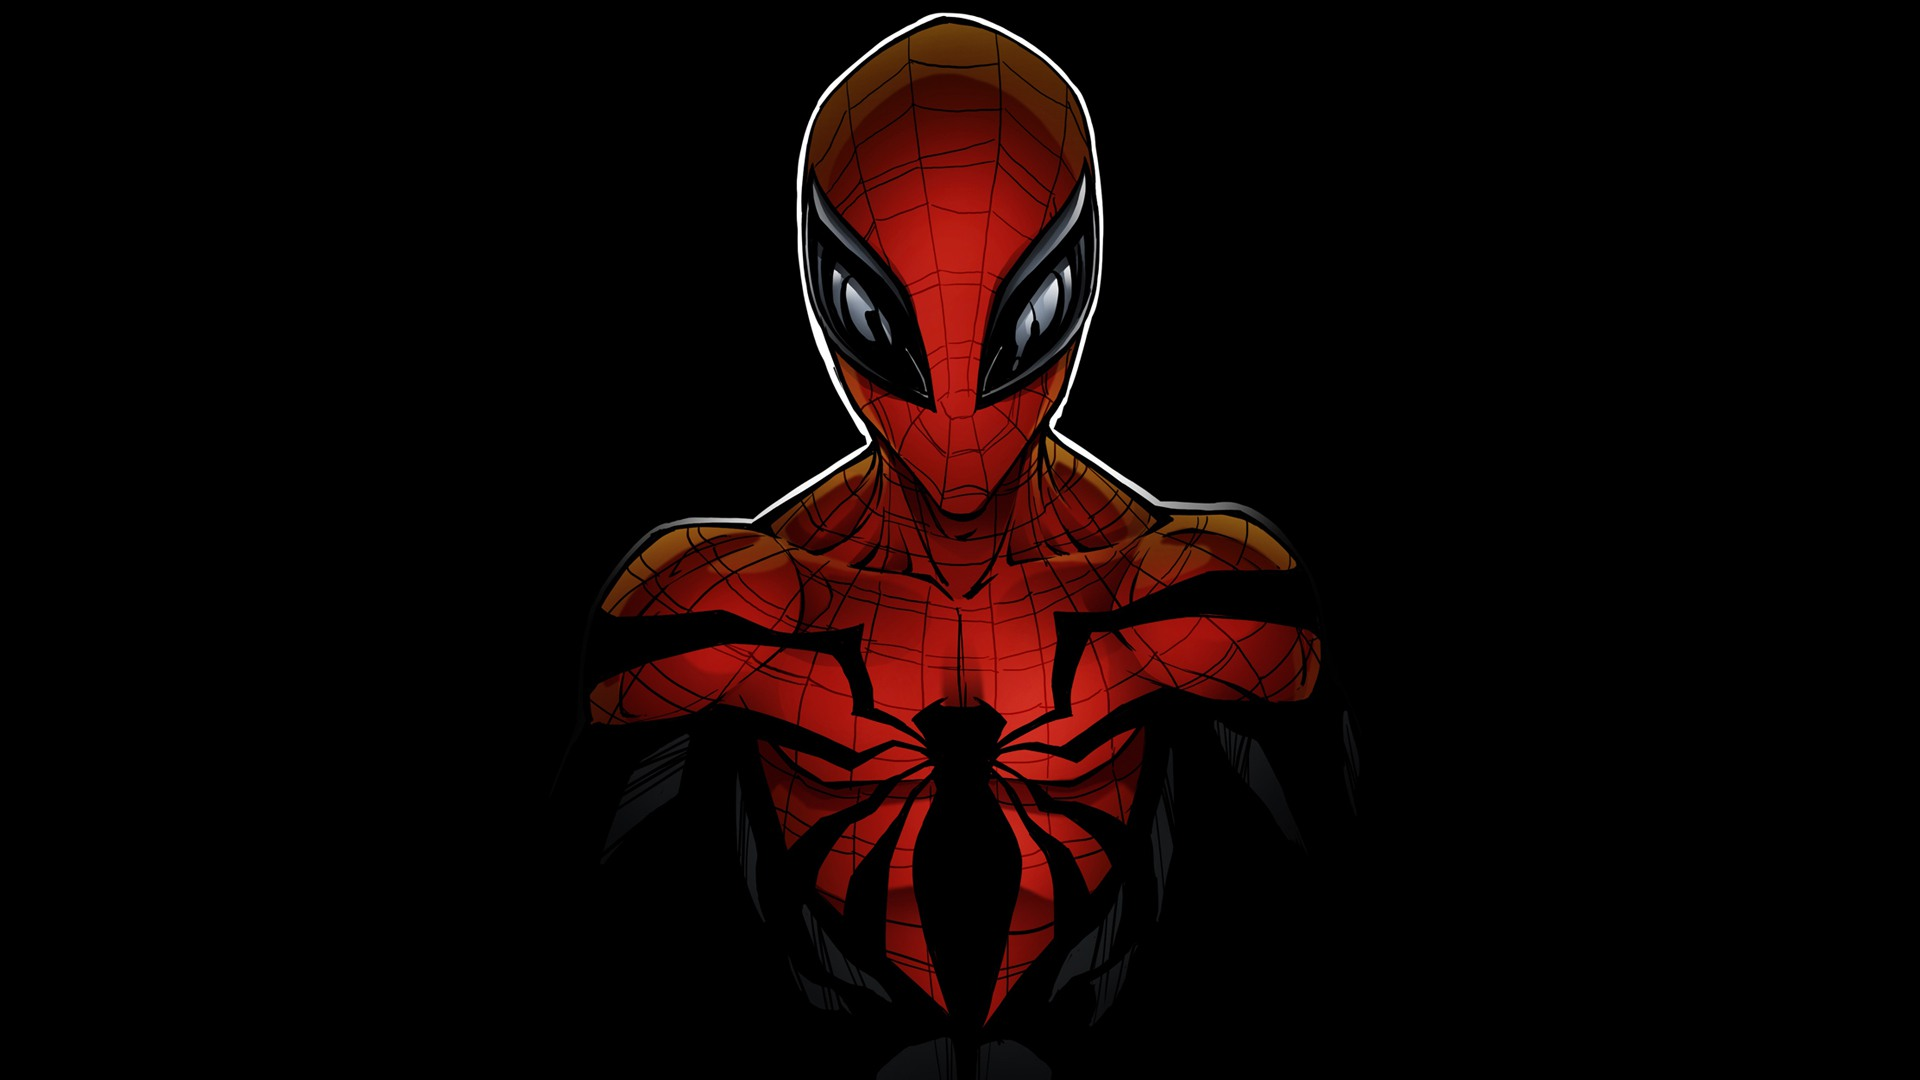 Spiderman Comicbook, HD Superheroes, 4k Wallpapers, Images ...